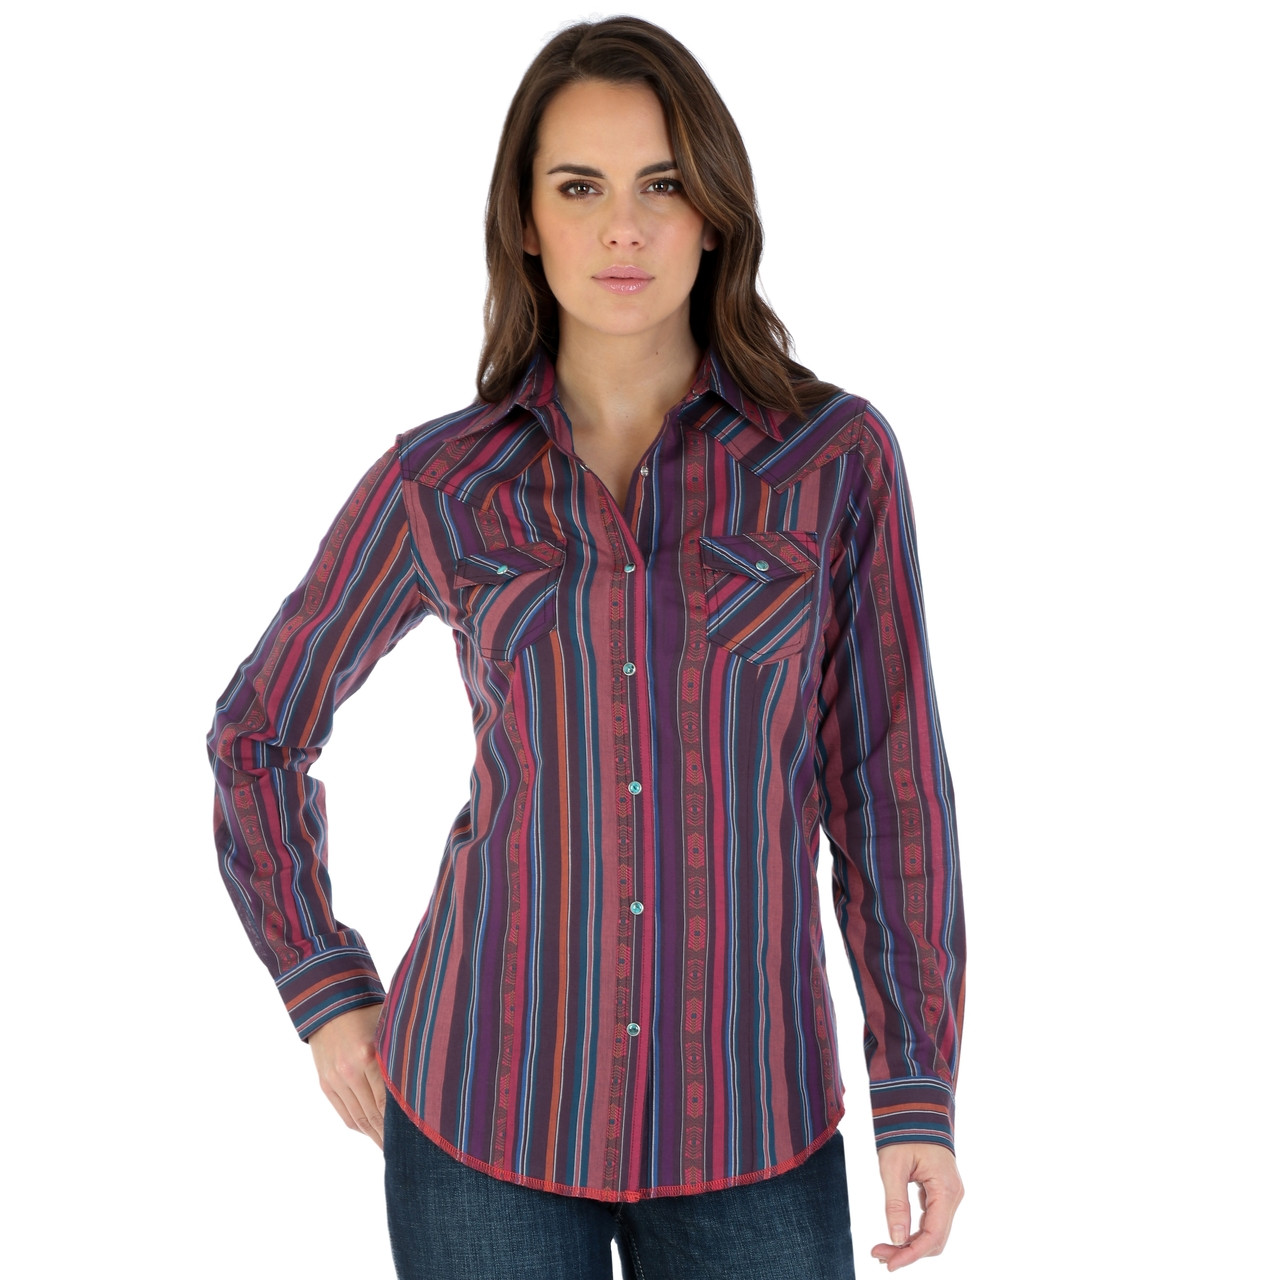 b9958a93 Women's Wrangler Pink and Purple Striped Shirt - Herbert's Boots and ...